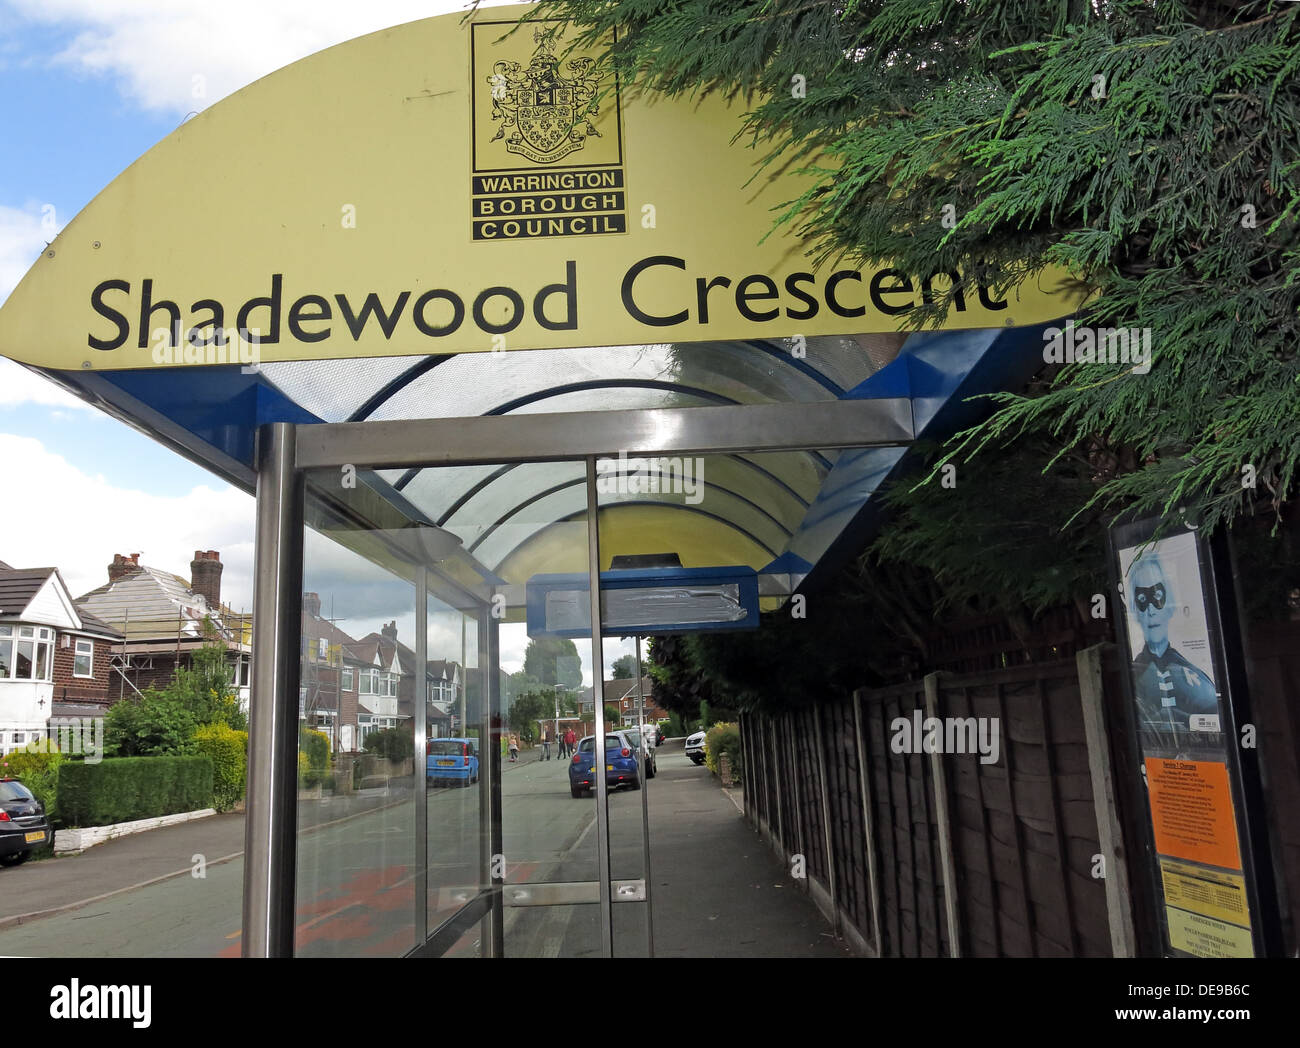 Shadewood Crescent Bus Shelter, Grappenhall, Warrington, Cheshire, England, UK - Stock Image